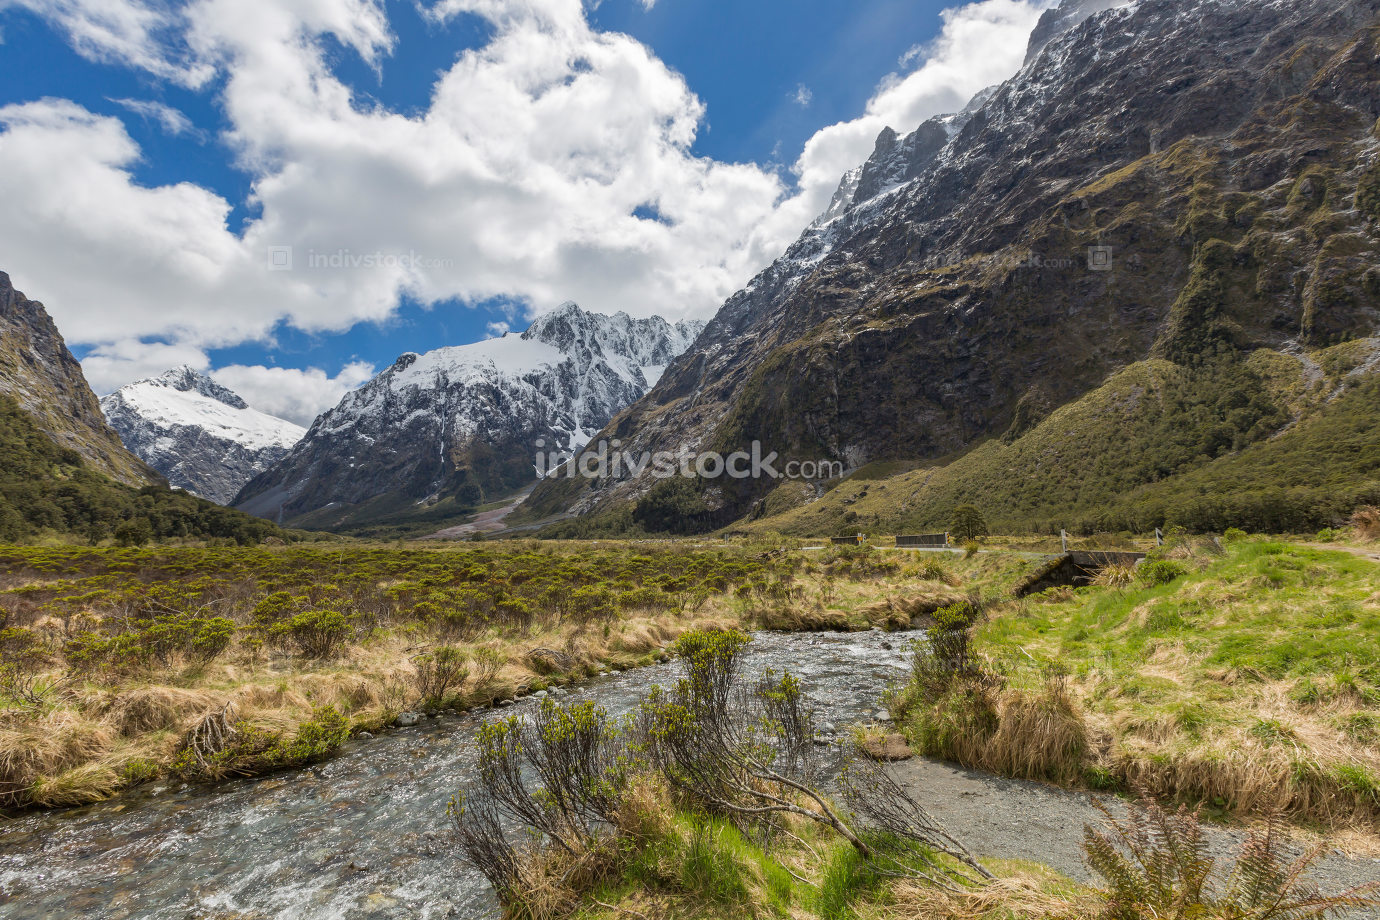 milford road along cleddau valley with the view of fiordland nat